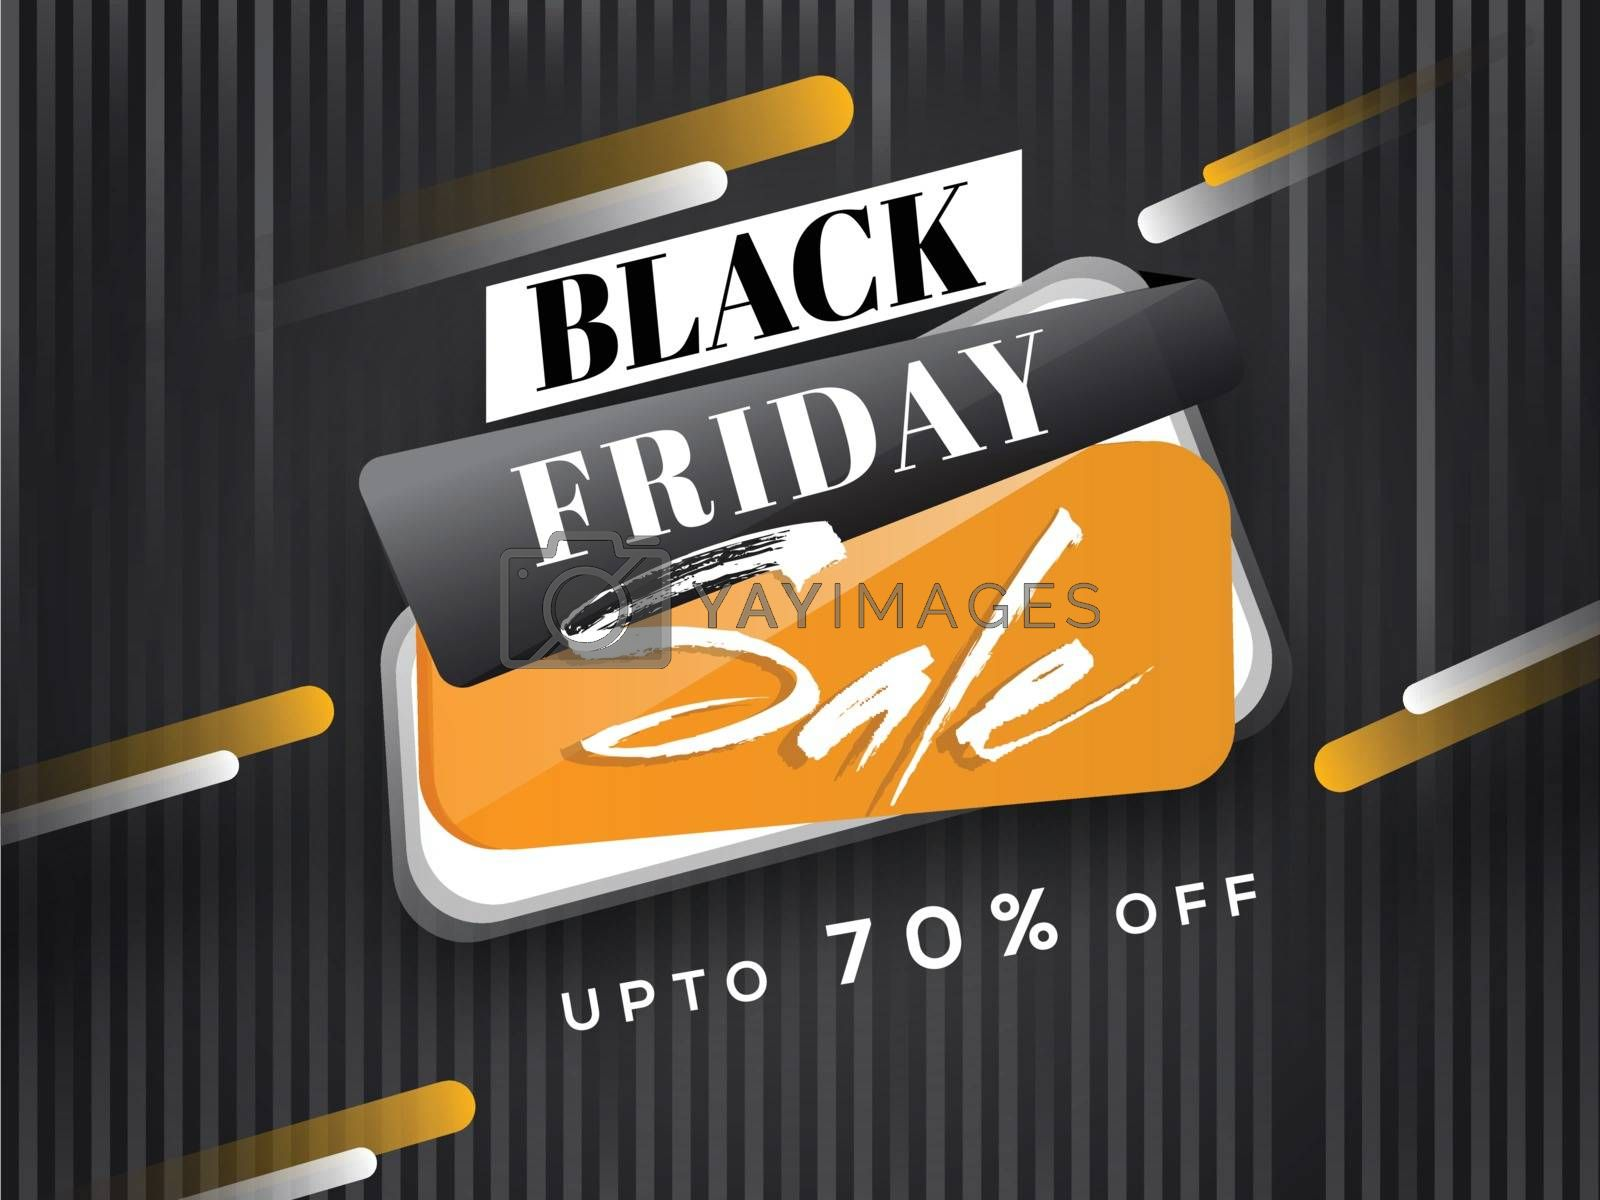 Sale tag for Black Friday with 70% discount offer on abstract background.